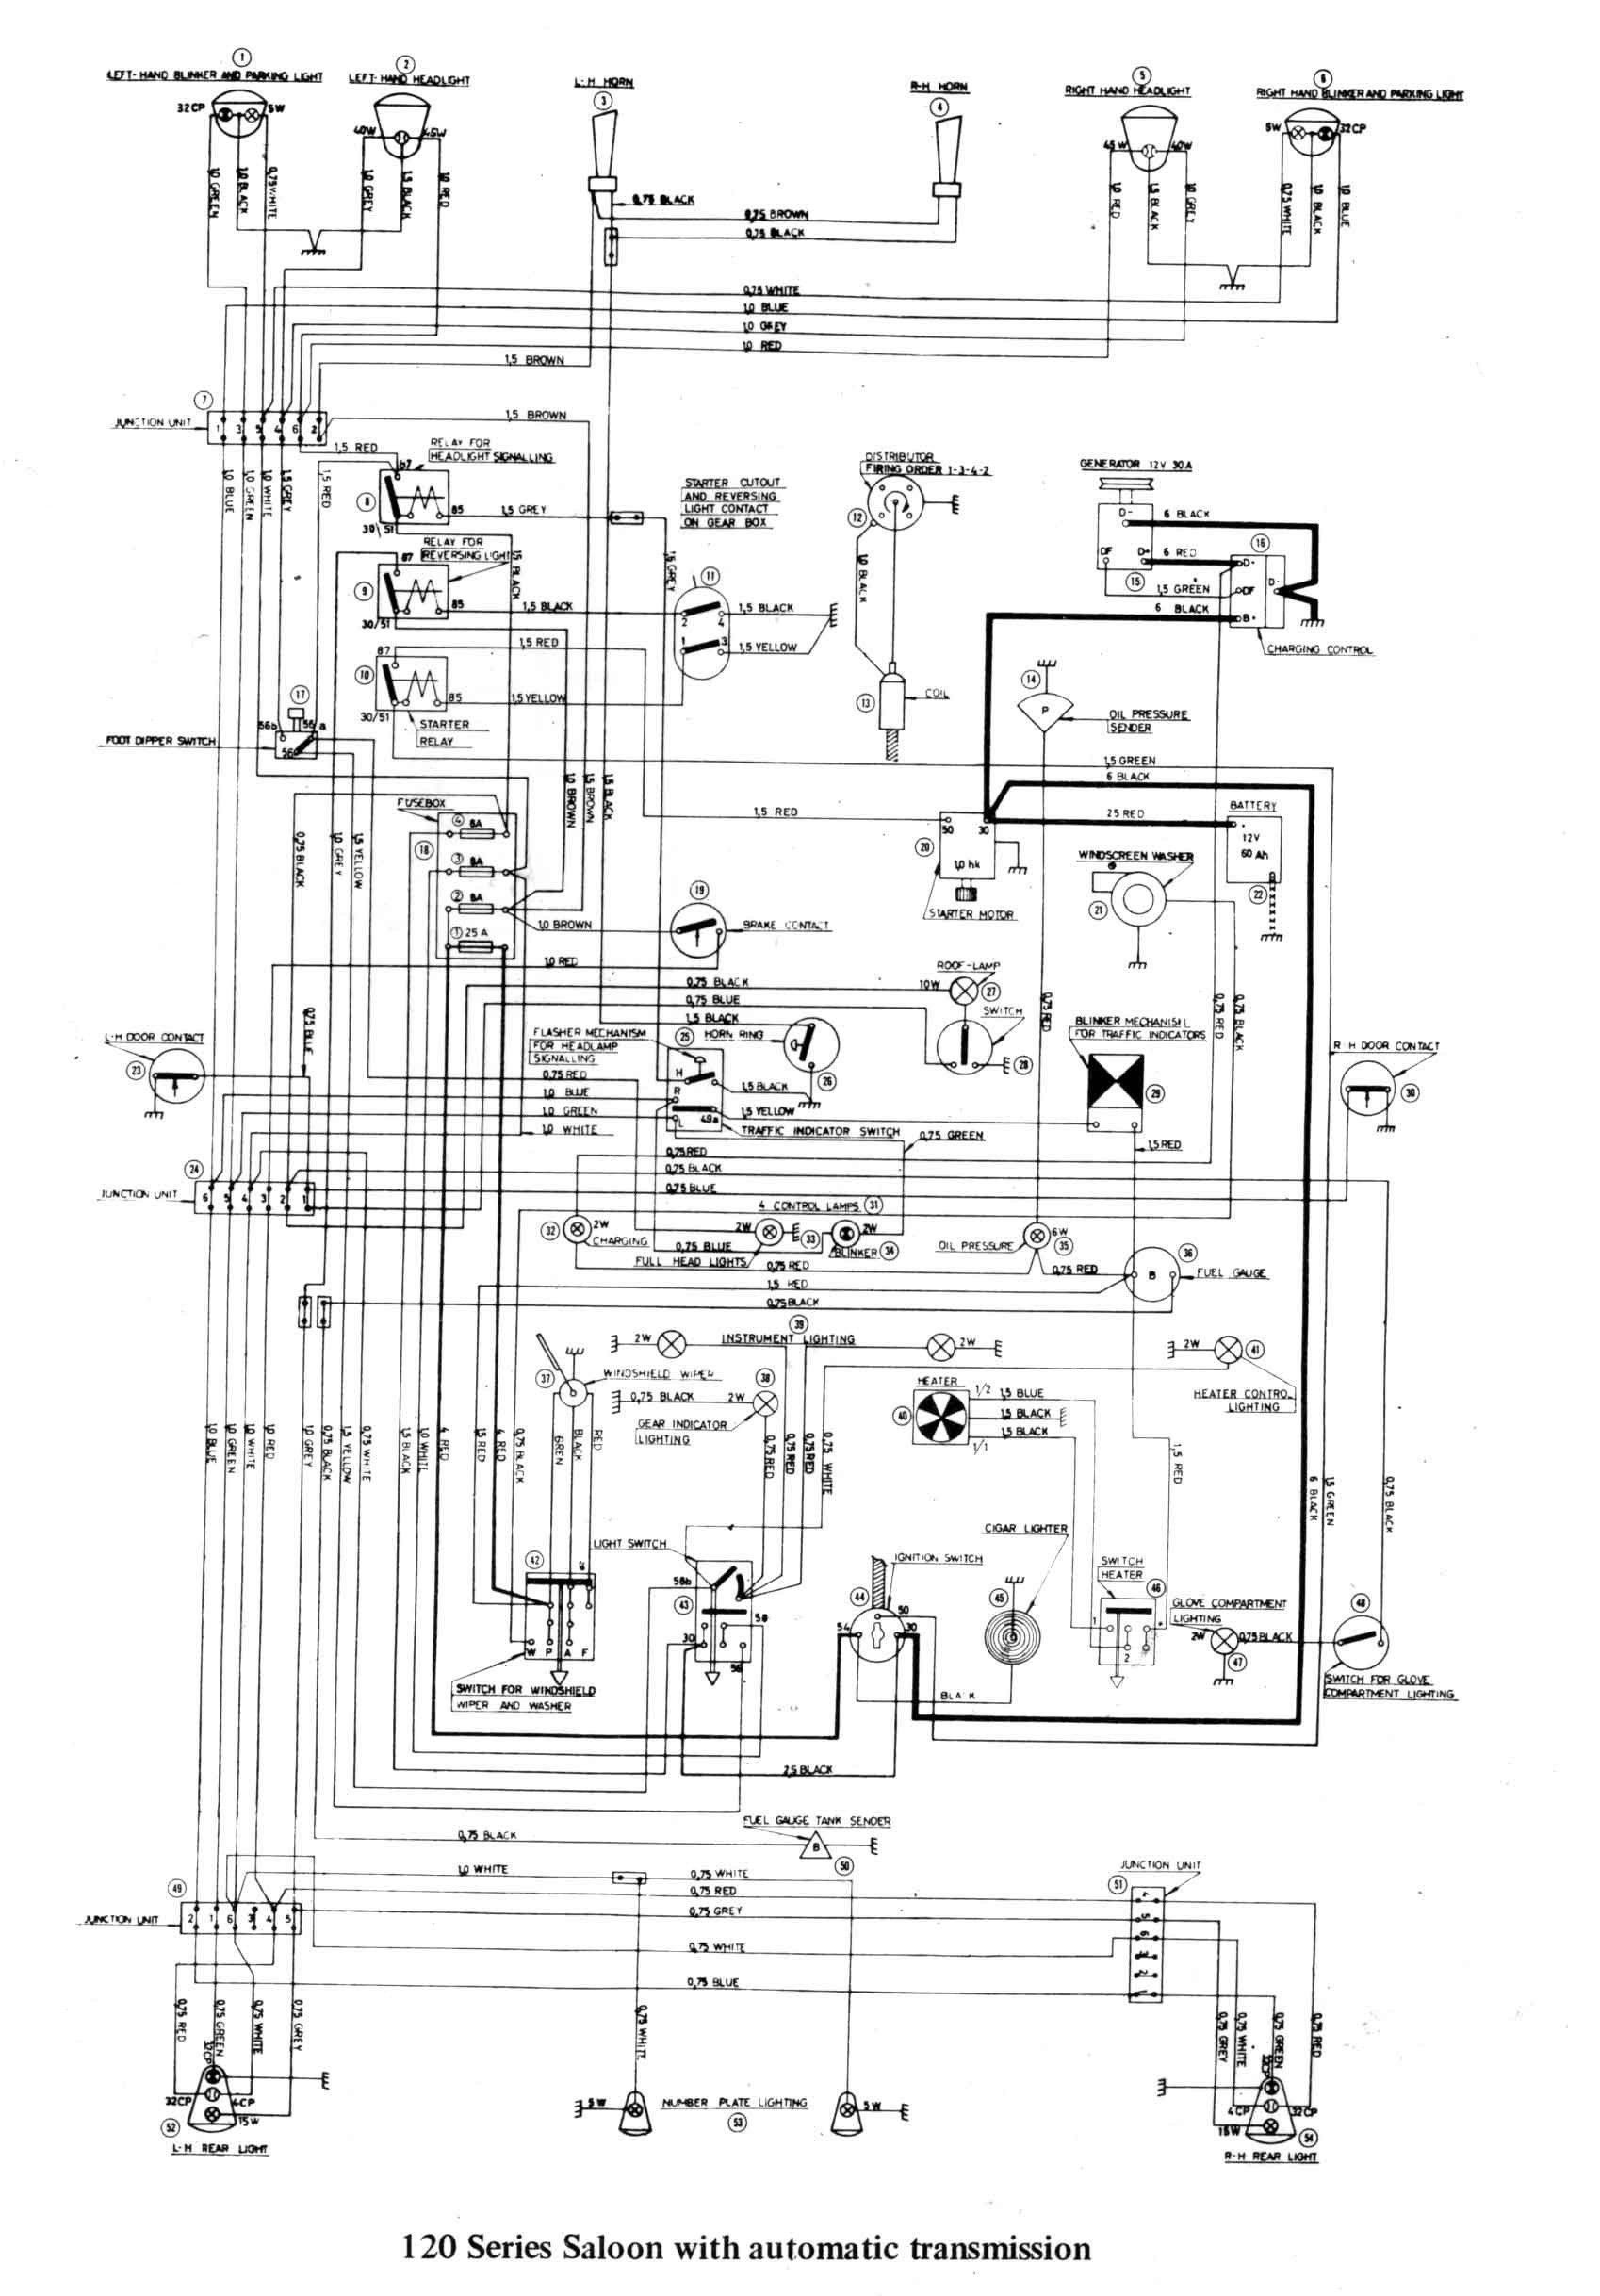 2002 Volvo S60 Wiring Diagram Anything Diagrams Camaro Fuse Box As Well On 94 Rh Onzegroup Co